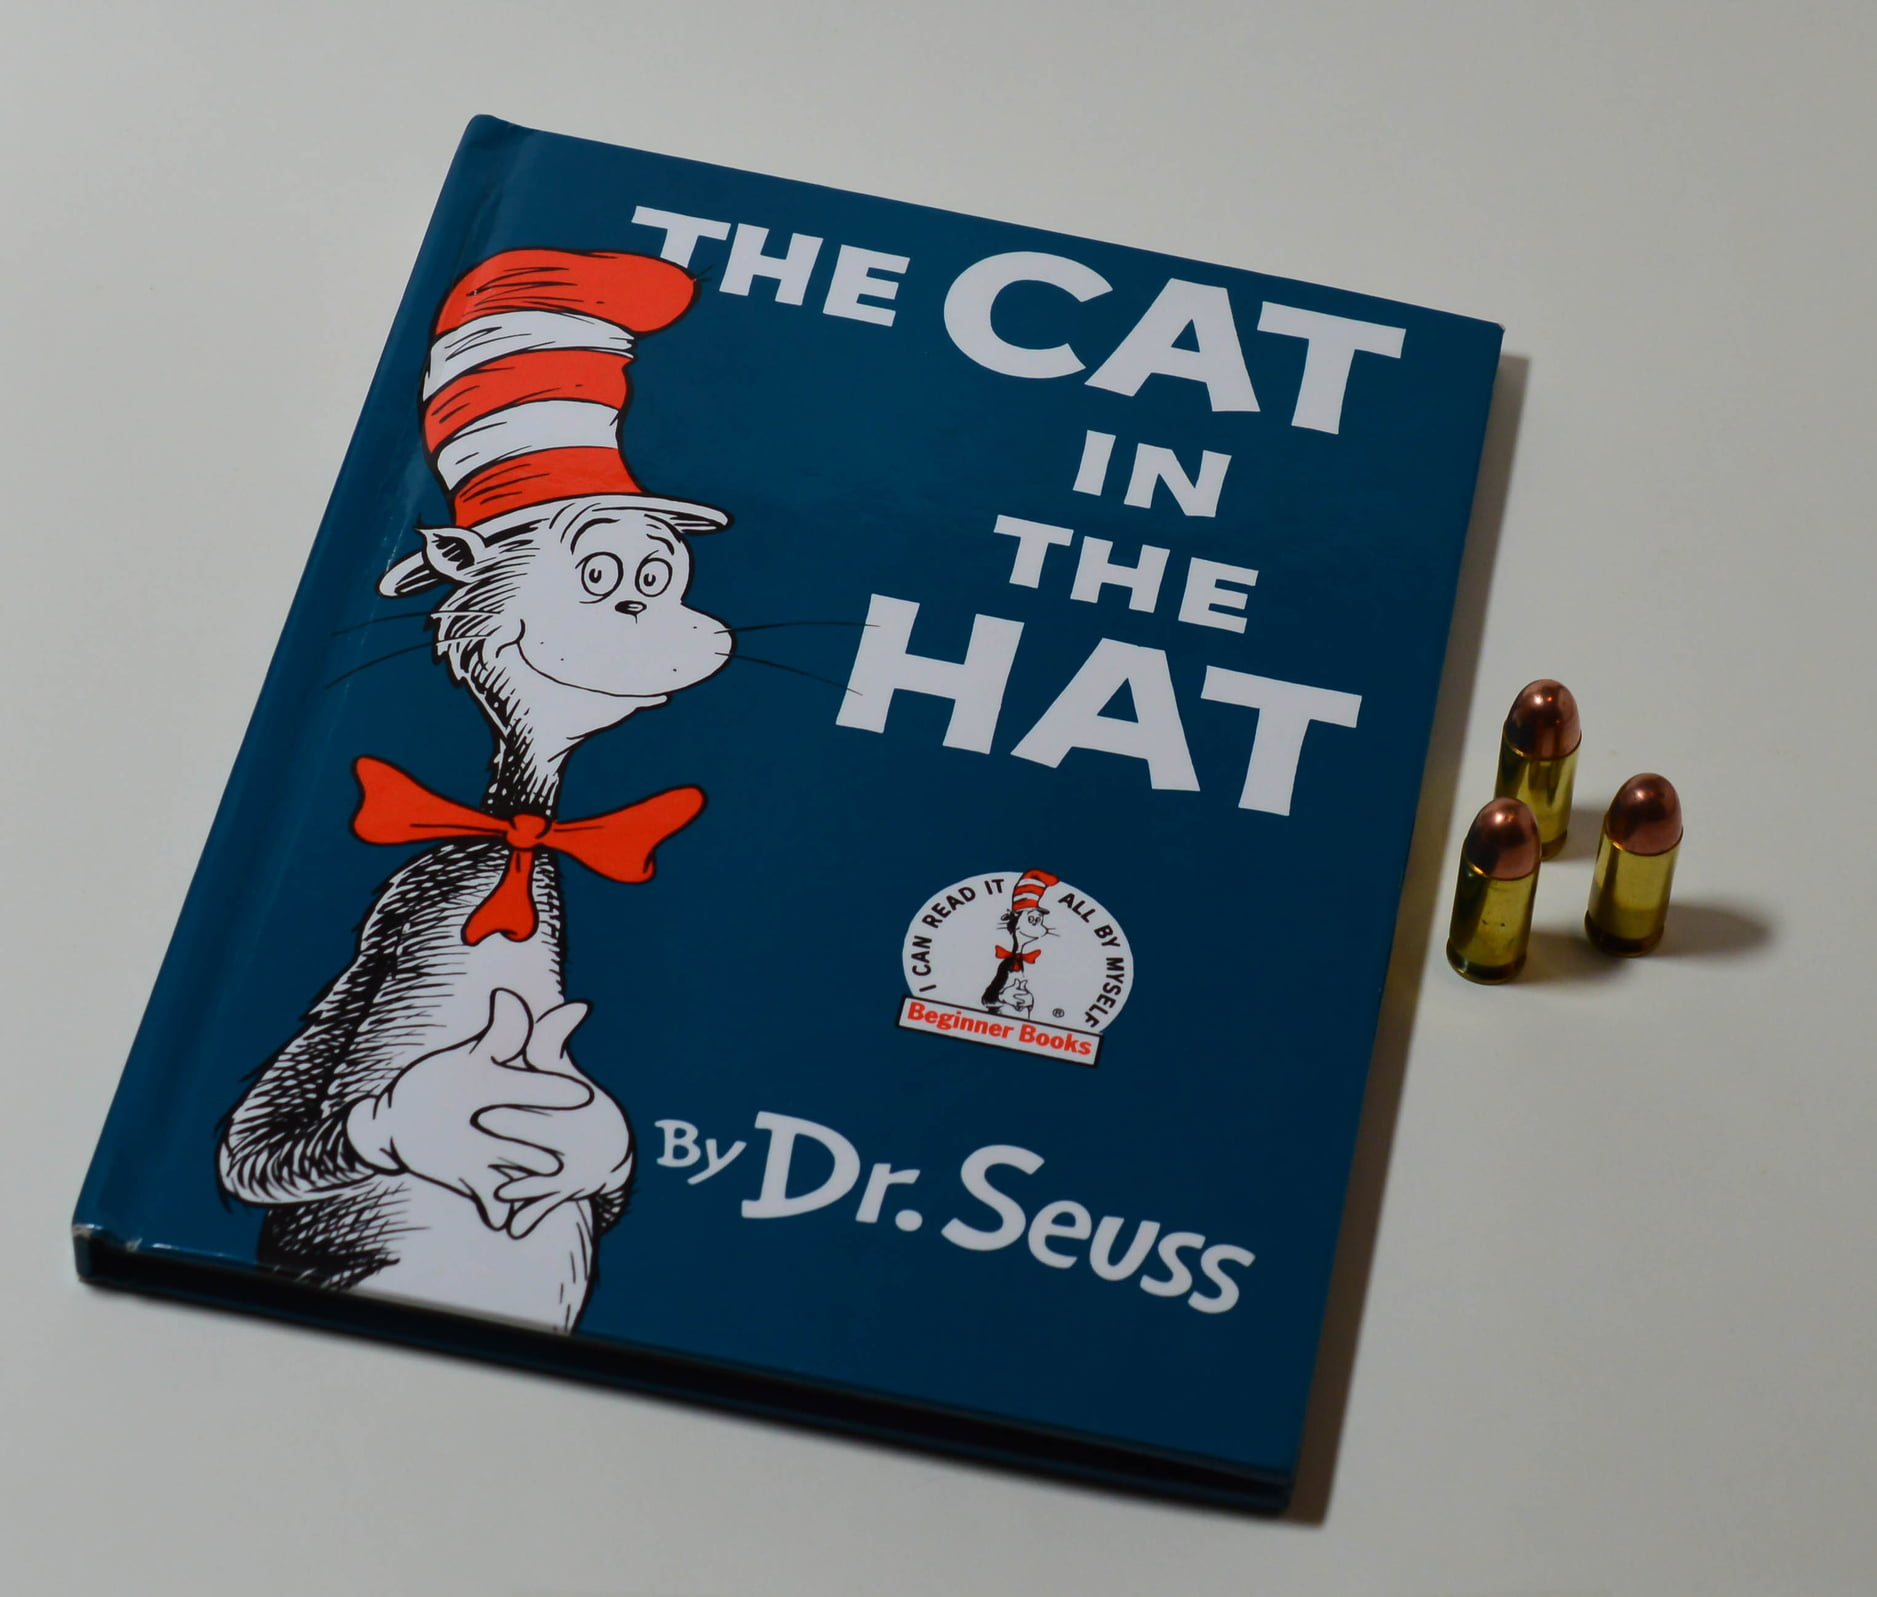 Biden Declares War on Iran After Ayatollah Reads 'The Cat in the Hat'